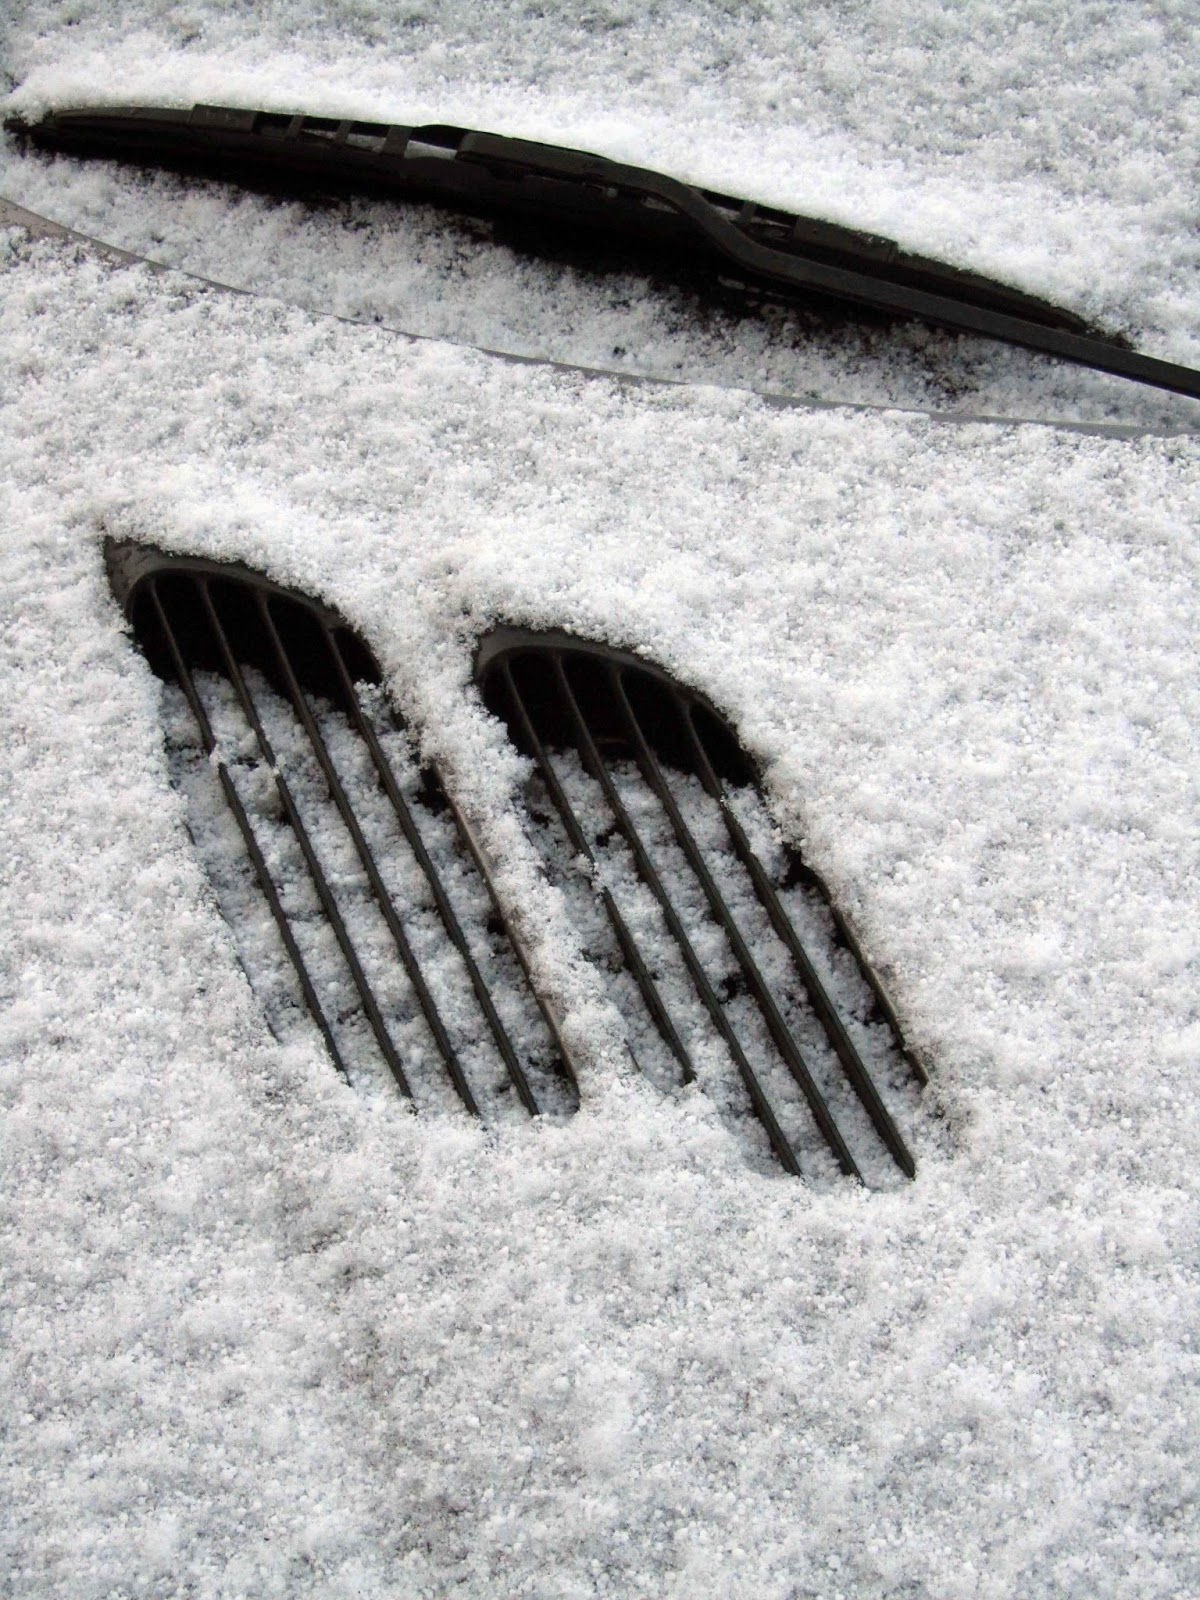 grids of car covered in snow